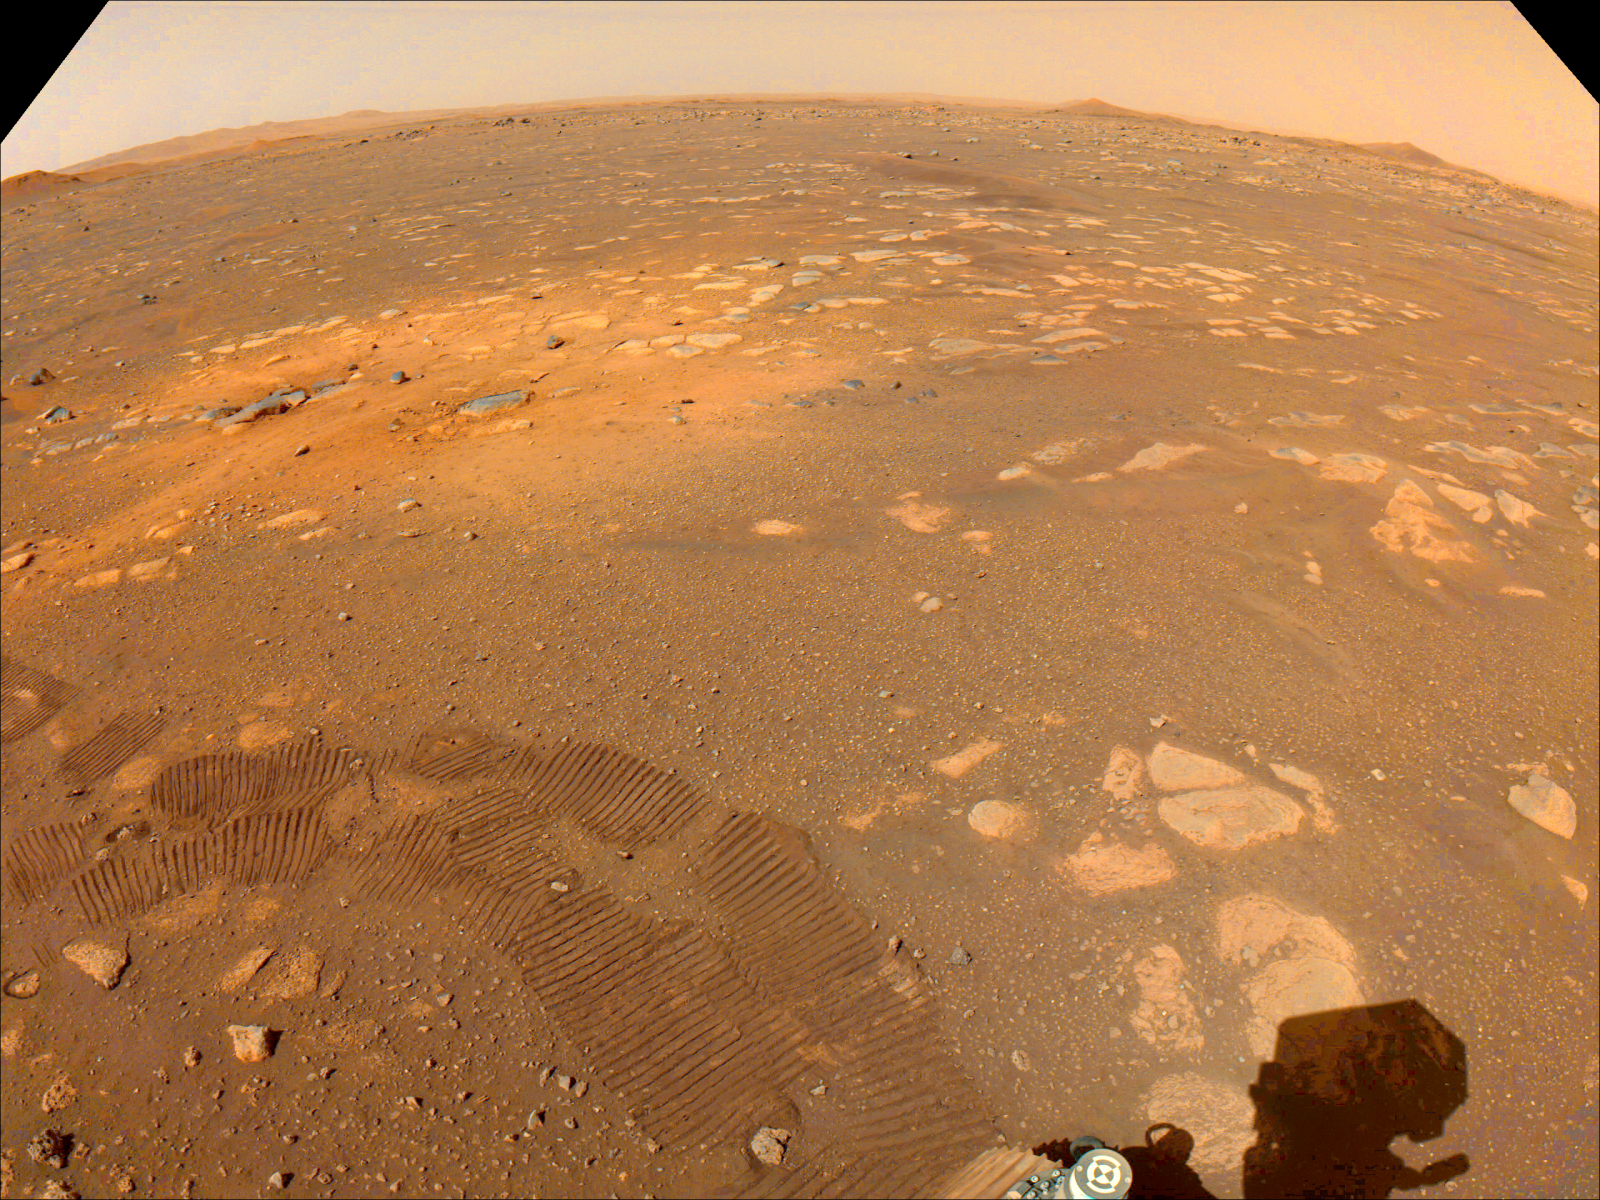 A view of the area washed by the Perseverance Rover during the descending phase. Image source: NASA / JPL-Caltech